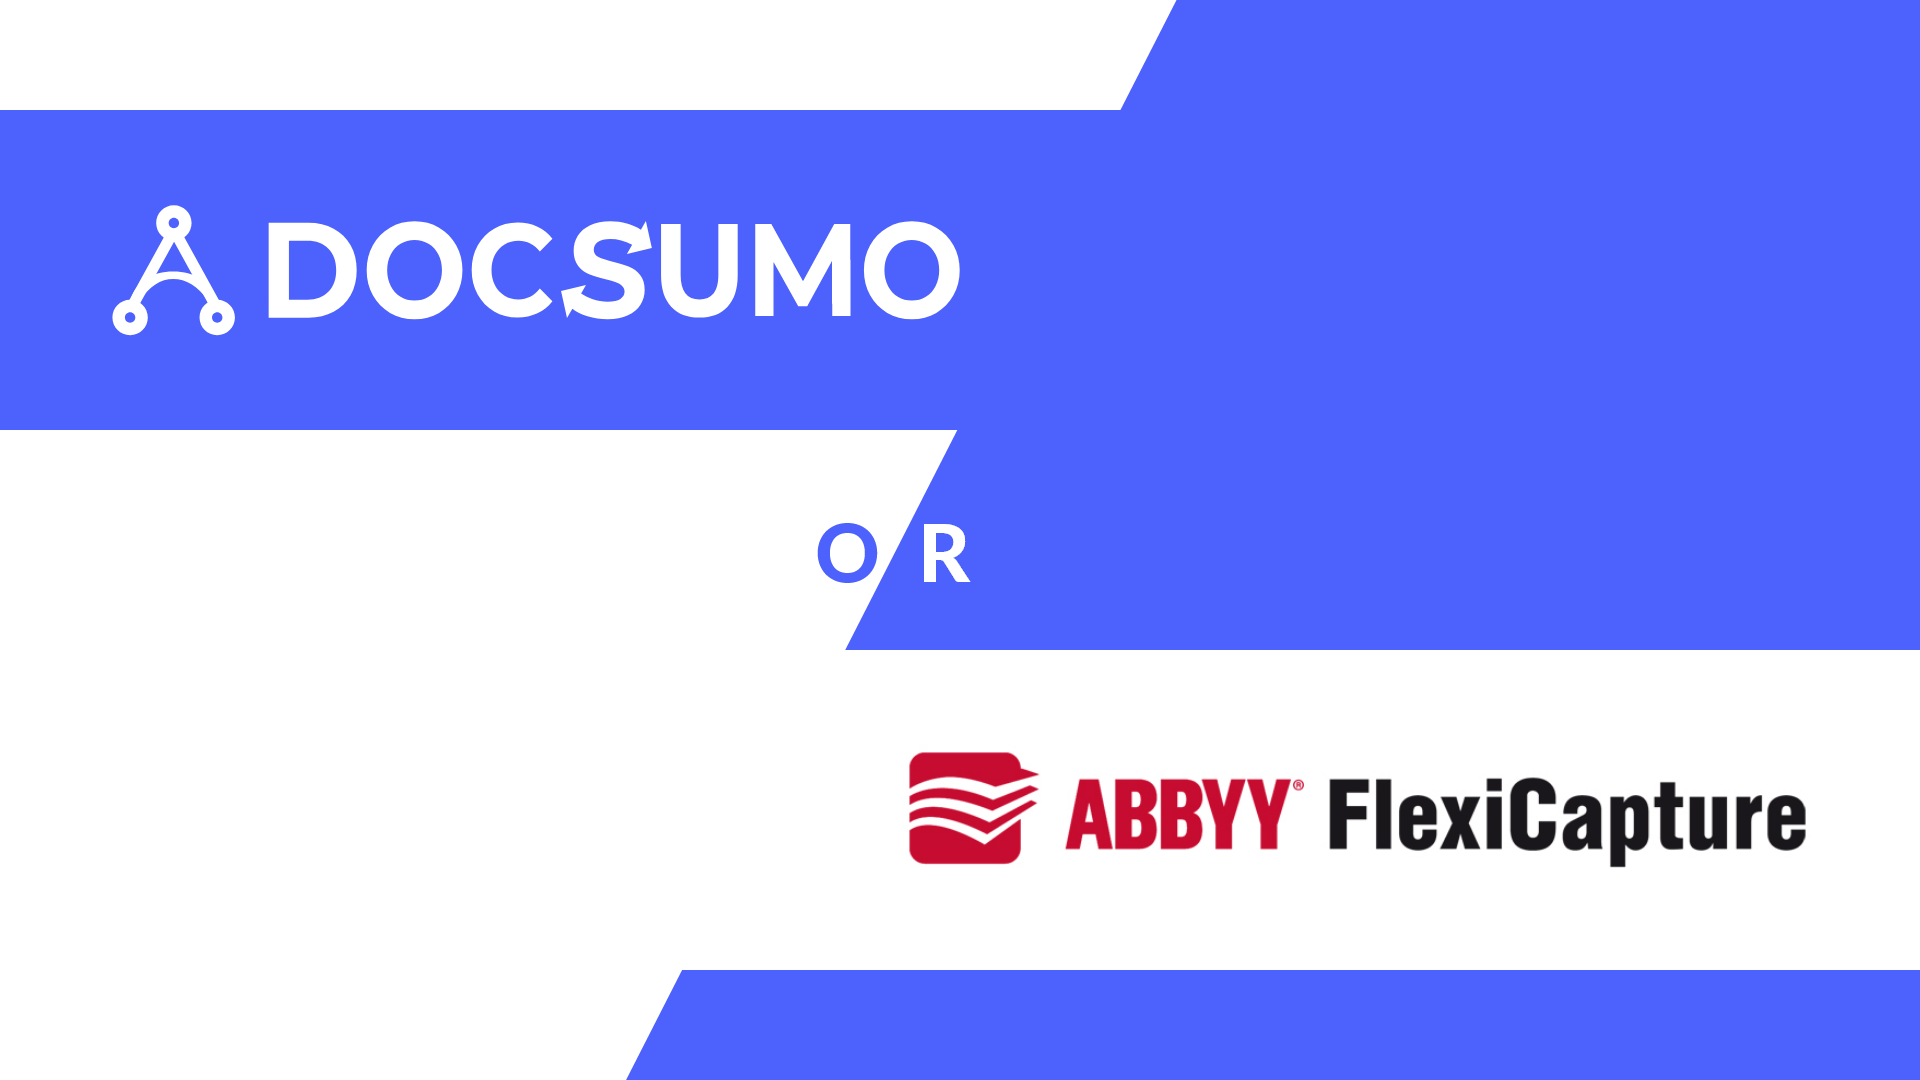 How good Docsumo is as an alternative to Abbyy Flexicapture